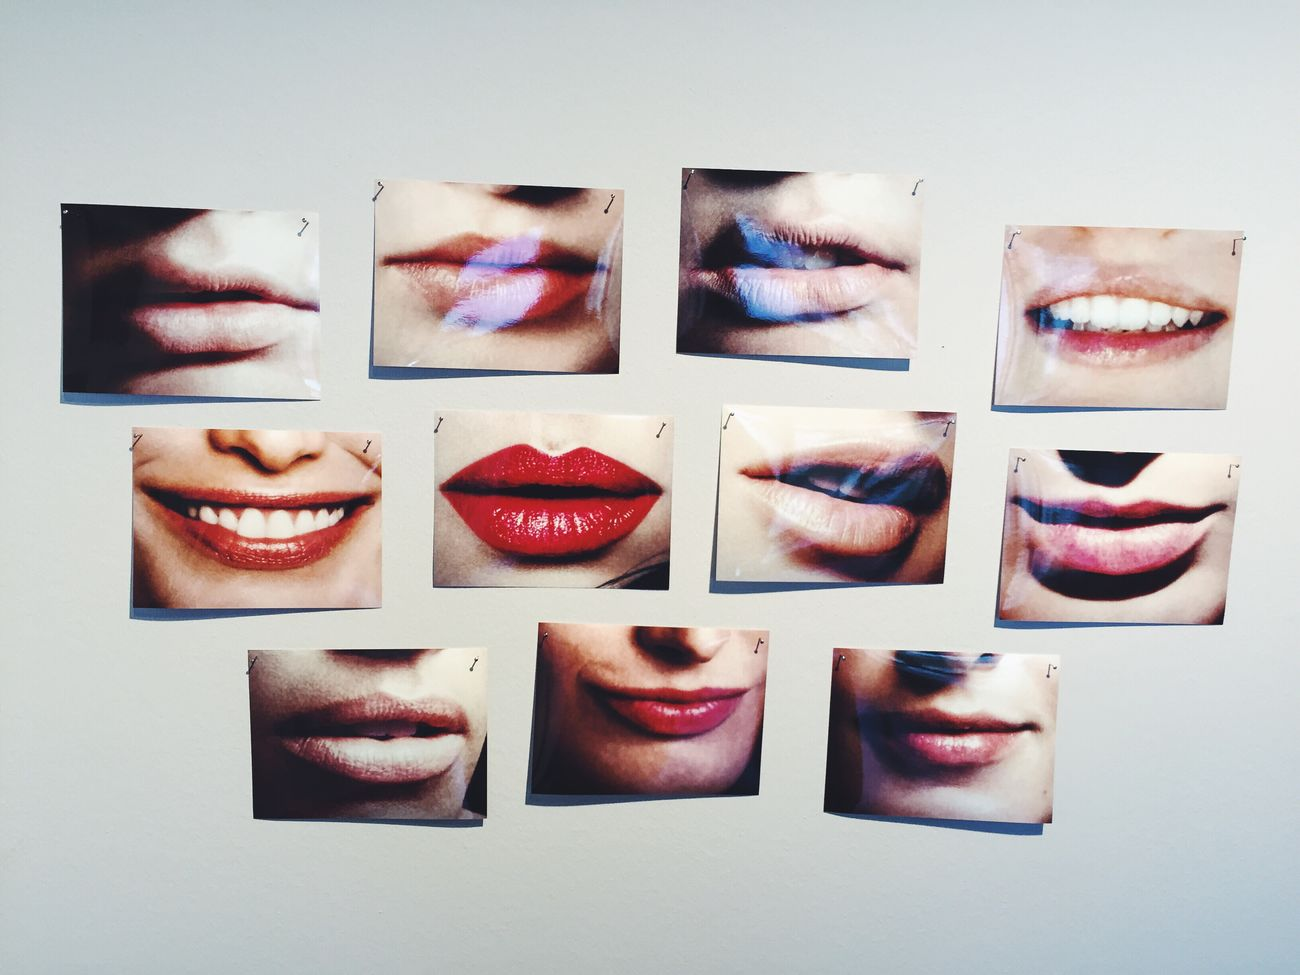 Fantastic Exhibition Art Lips Hans Peter Feldmann Eyeemoninstagram VSCO Photography Berlin Getting Inspired White Album Discovering Great Works